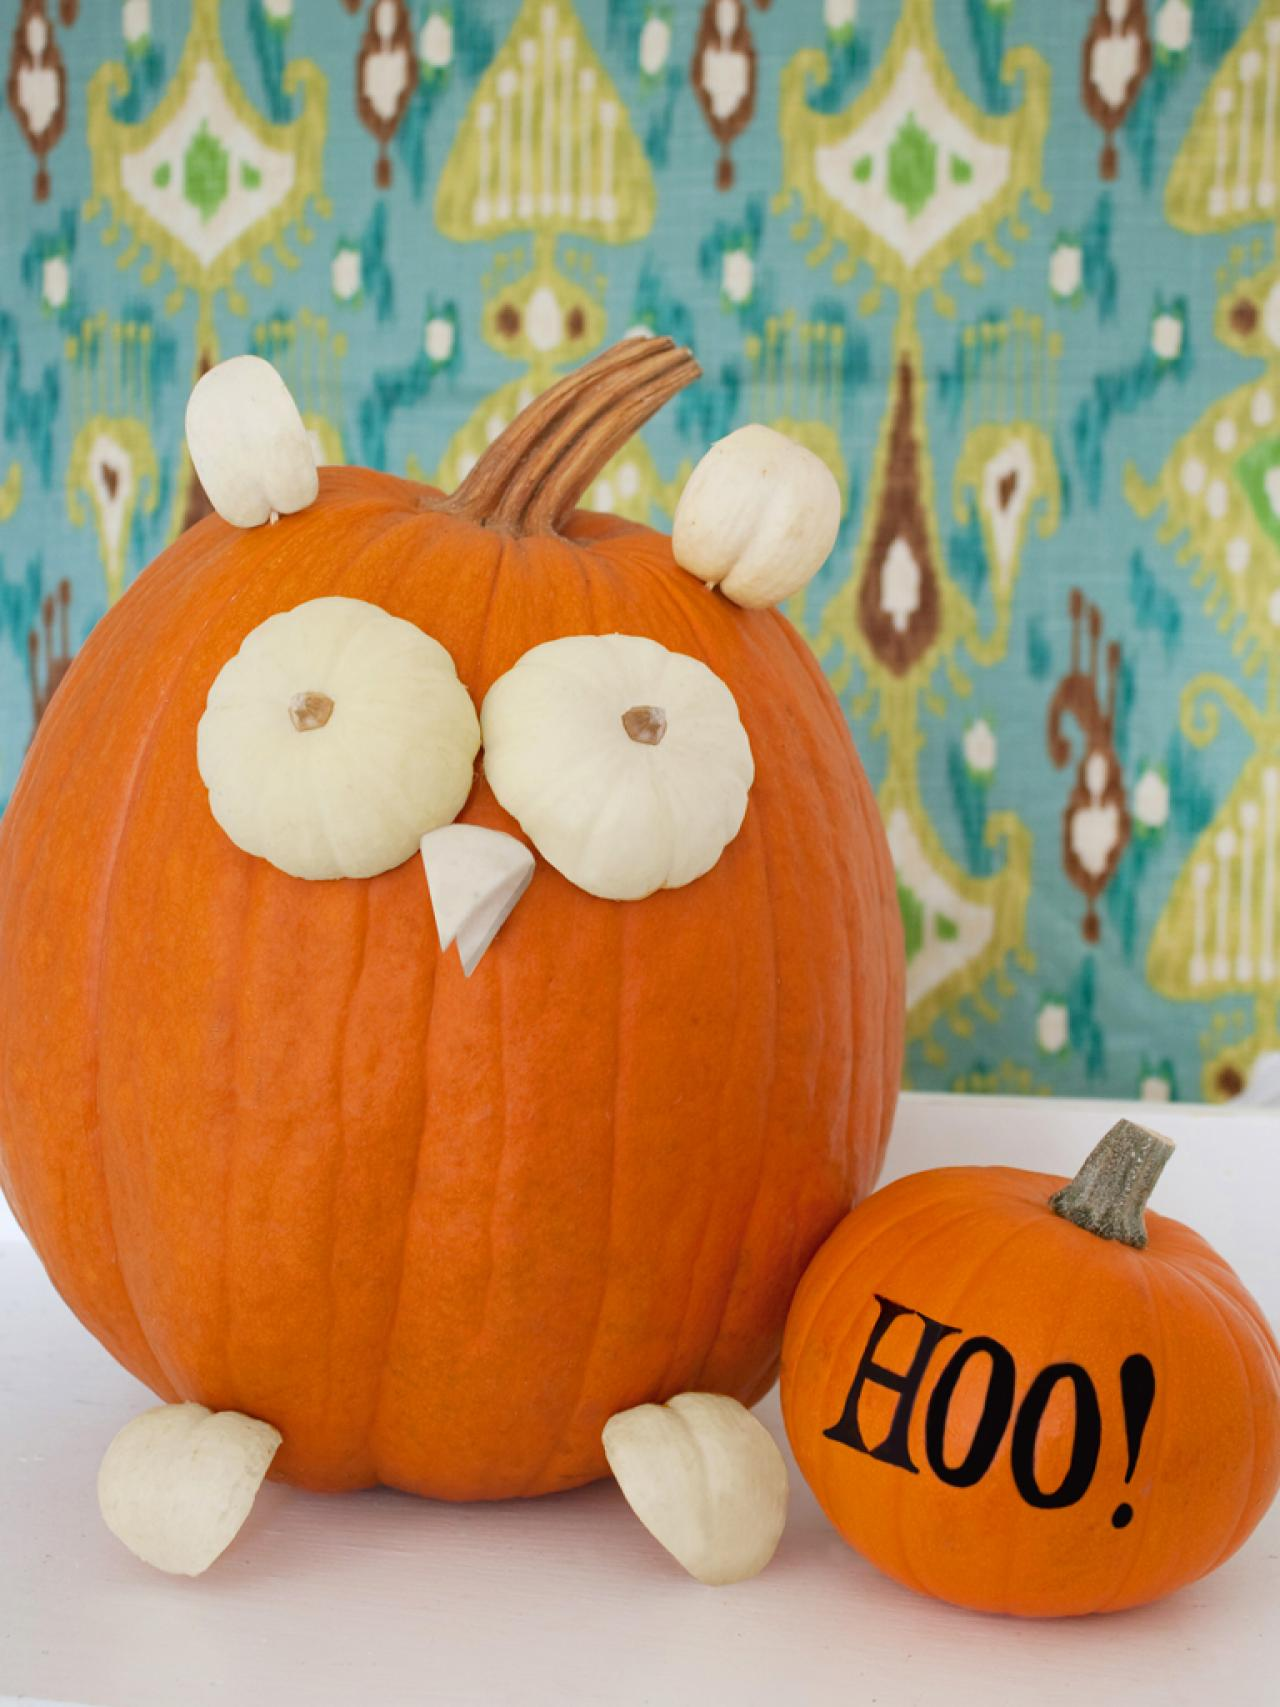 halloween night owl - Halloween Pumpkin Designs Without Carving